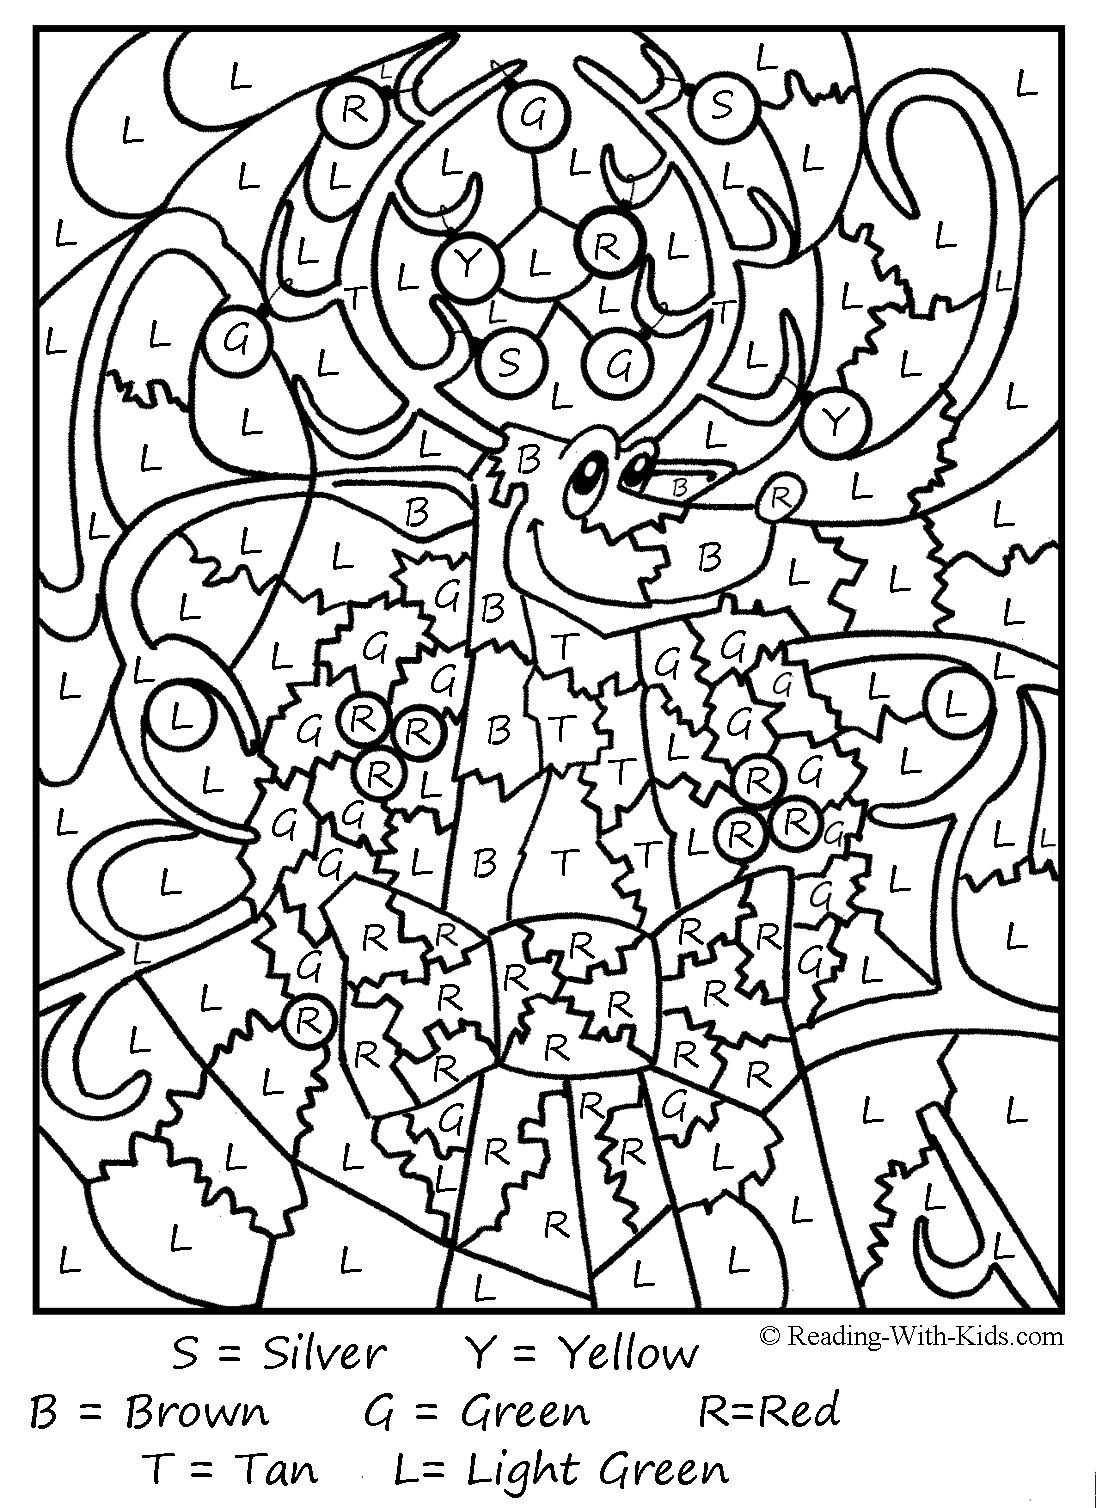 Coloring pages by numbers for adults - Color By Letter And Color By Number Coloring Pages Are Fun And